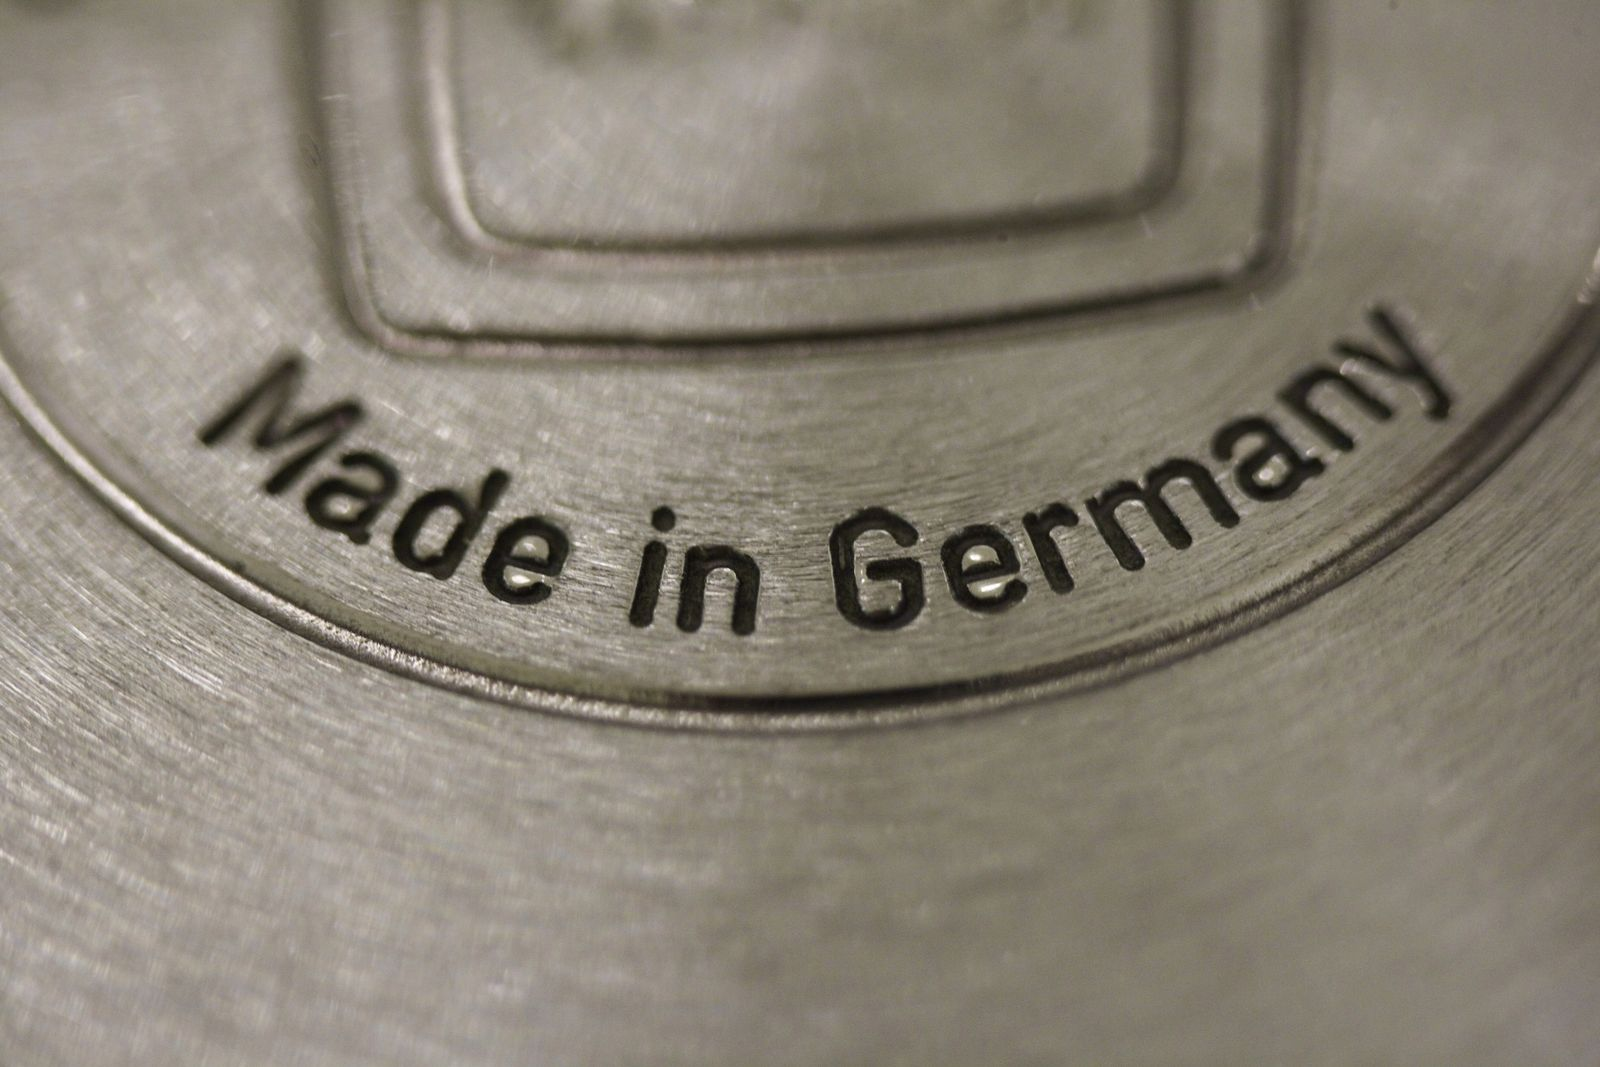 EINMALIGE VERWENDUNG MADE IN GERMANY